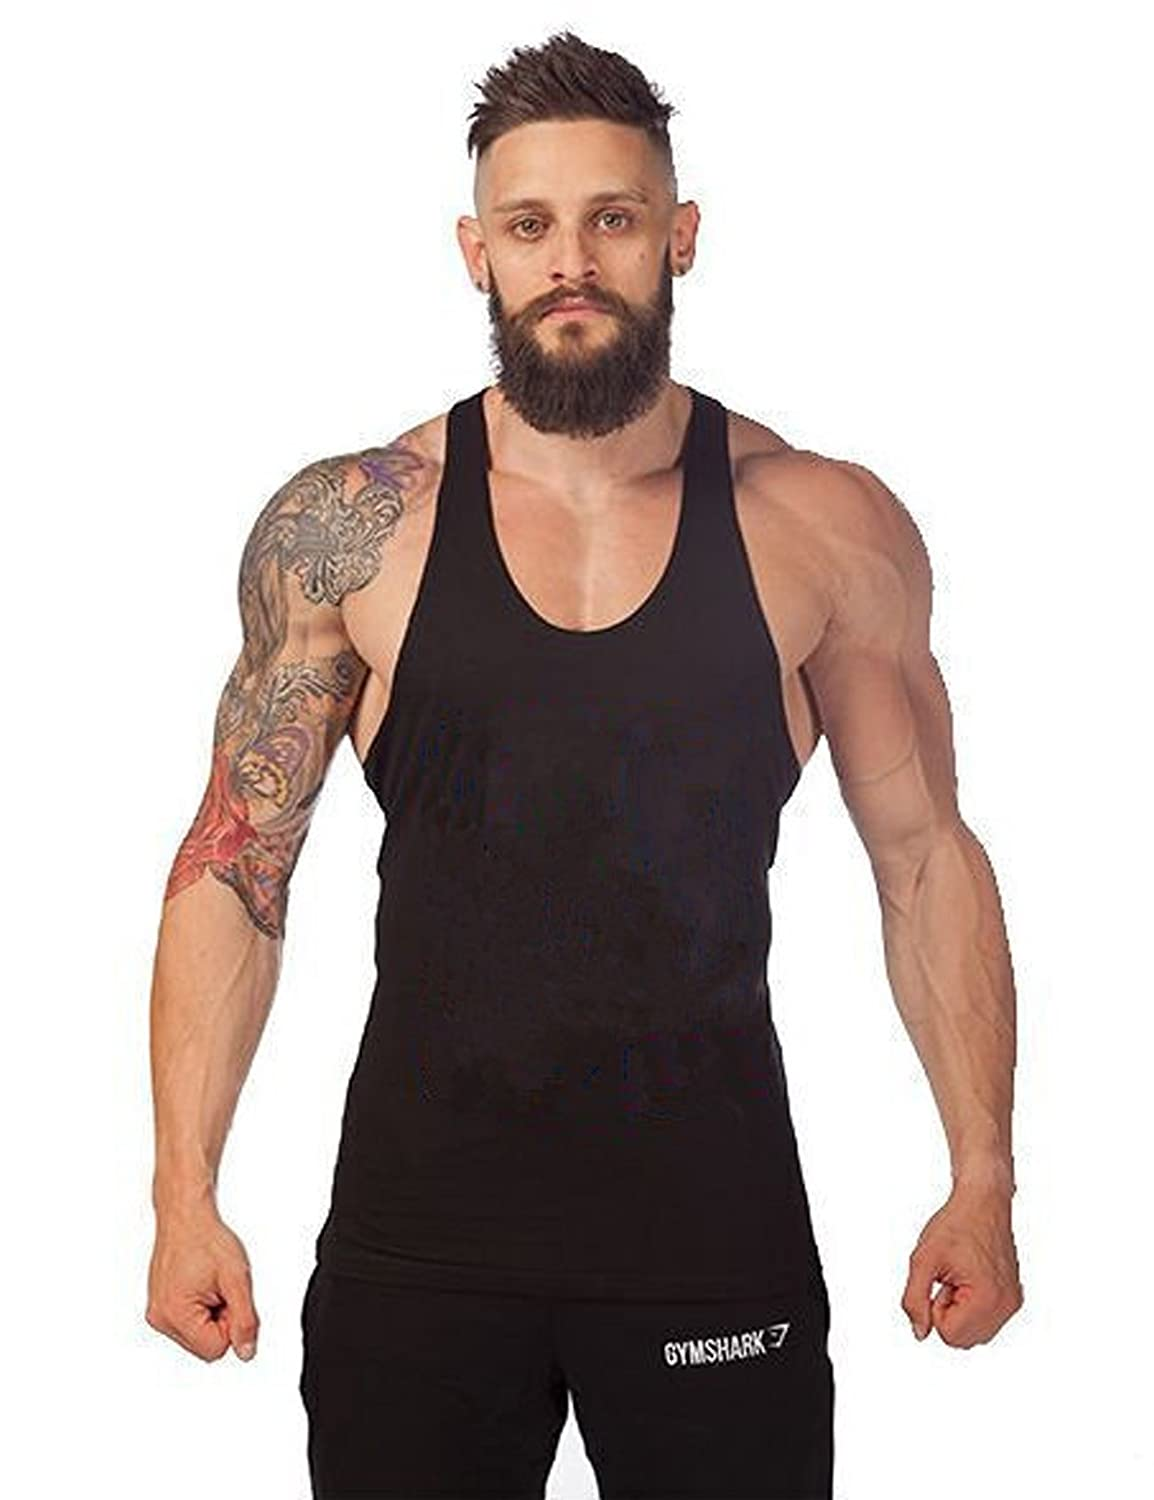 Bestgift Men\'s Sleeveless Cotton Tank Top BSGFNC0236